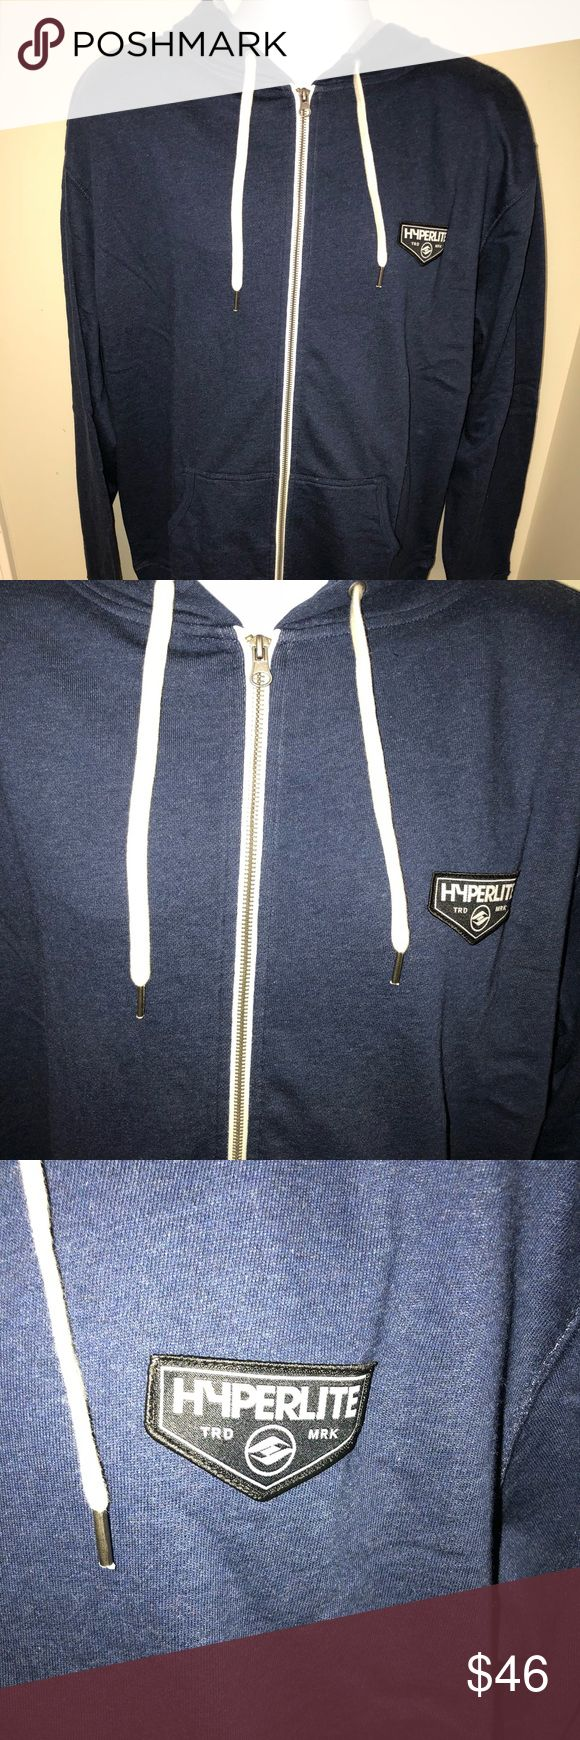 """Hyperlite Men's Chevron Front Zip Hoodie Navy XL Hyperlite Chevron Zip Hoodie.  Size XL.  Embroidered logo patch pocket, pouch pocket in front, thumbholes. Color: Navy Heather  Measurements:  Chest (armpit to armpit): 24, Sleeve: 28"""", Length: 28"""". Hyperlite Shirts Sweatshirts & Hoodies"""